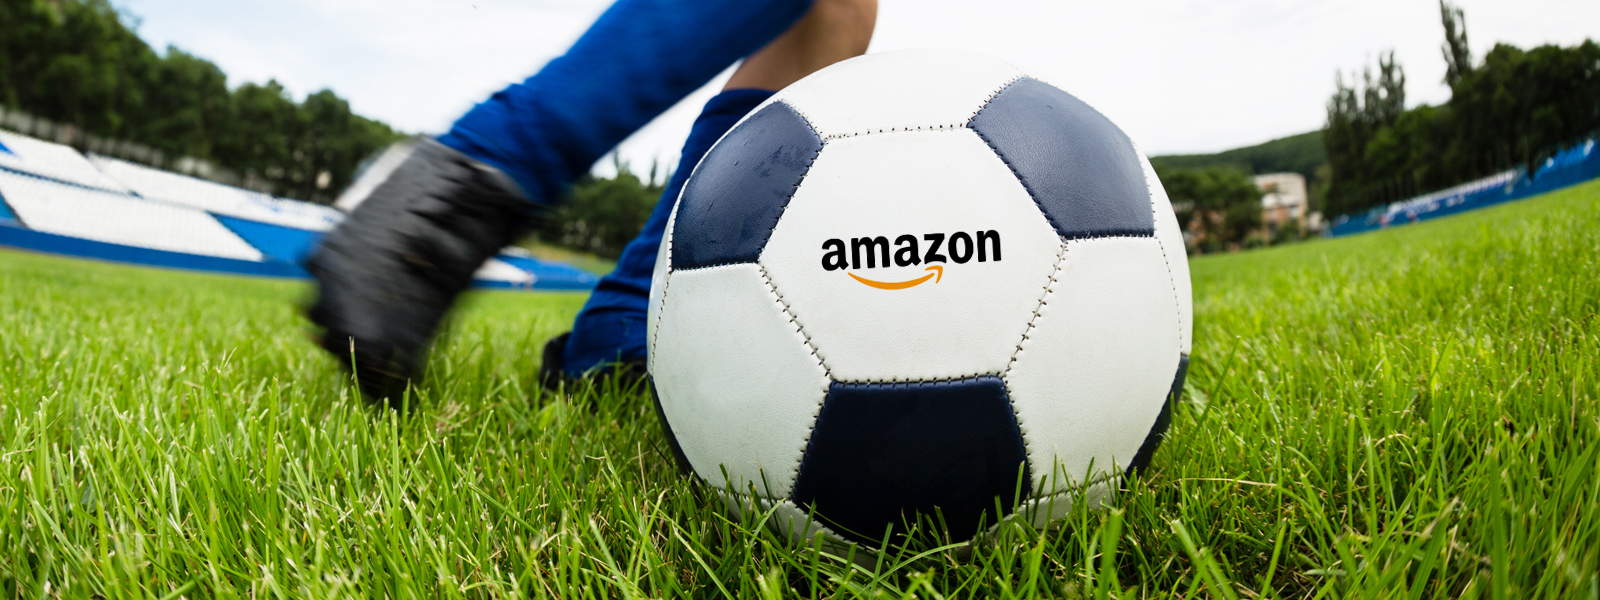 Amazon logo on a soccer ball